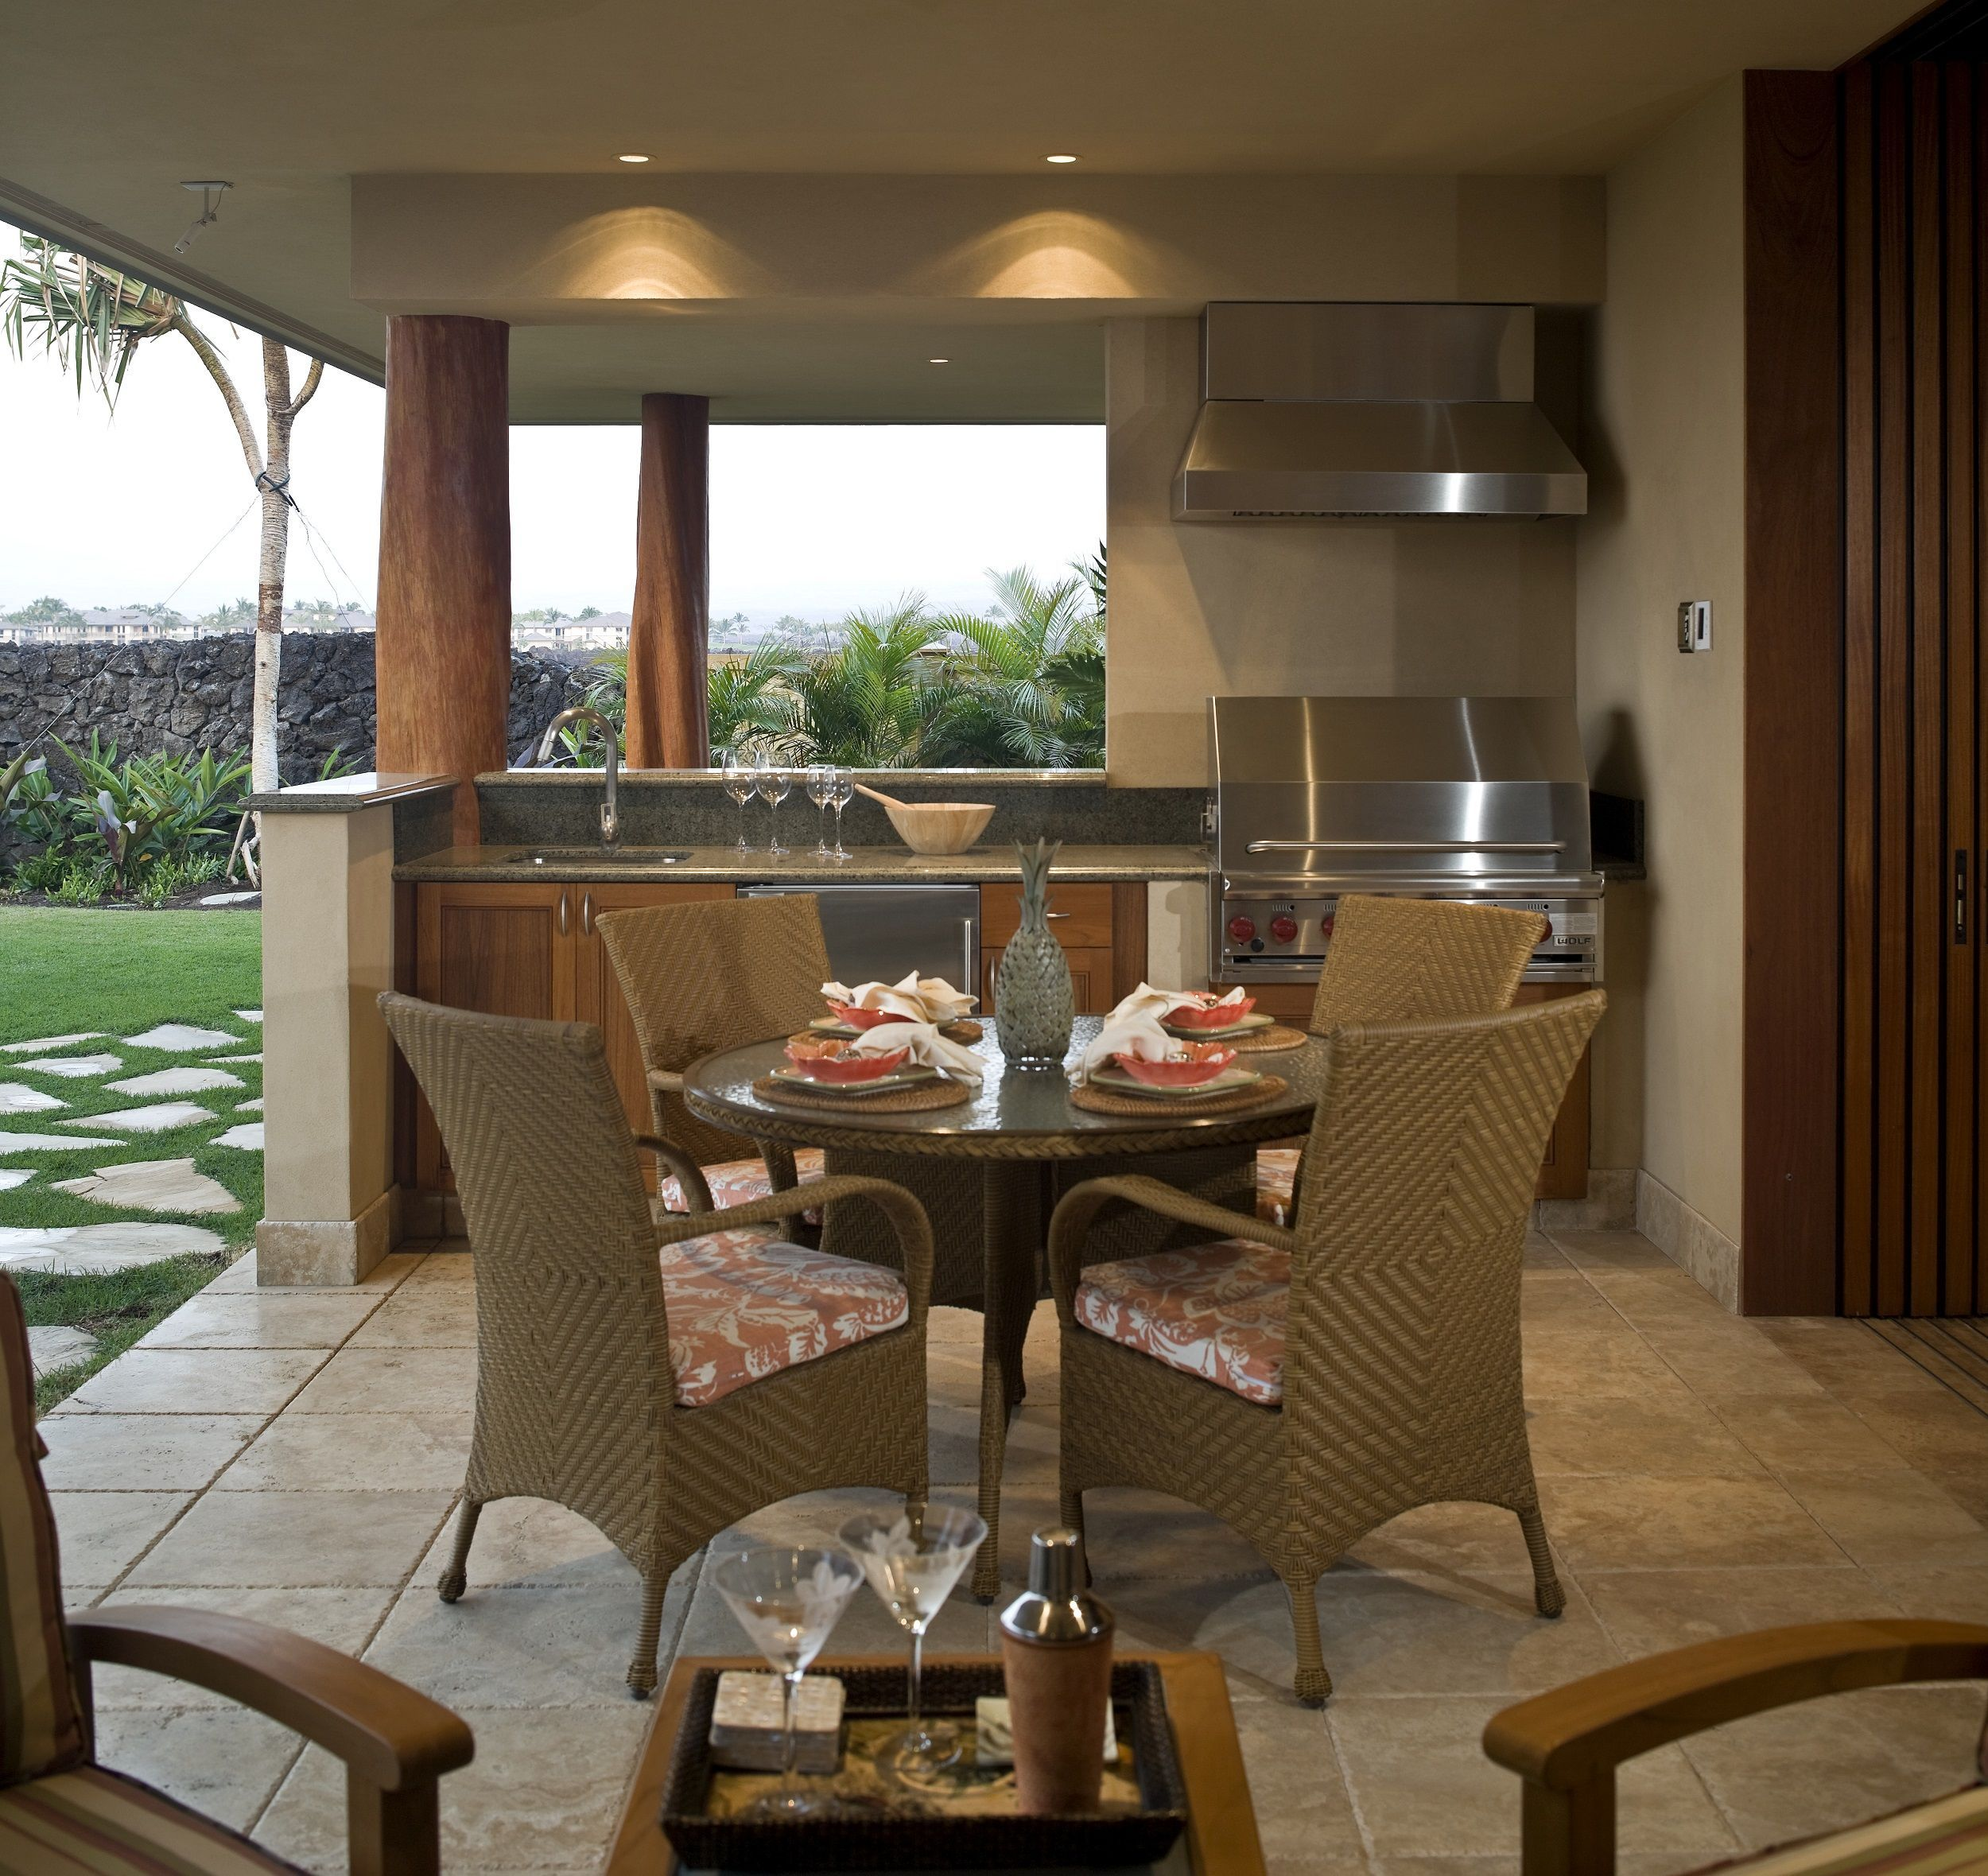 A Contemporary Outdoor Kitchen With Beautiful Tile Floors Stainless Steel Appliances And A Outdoor Kitchen Design Build Outdoor Kitchen Outdoor Patio Designs